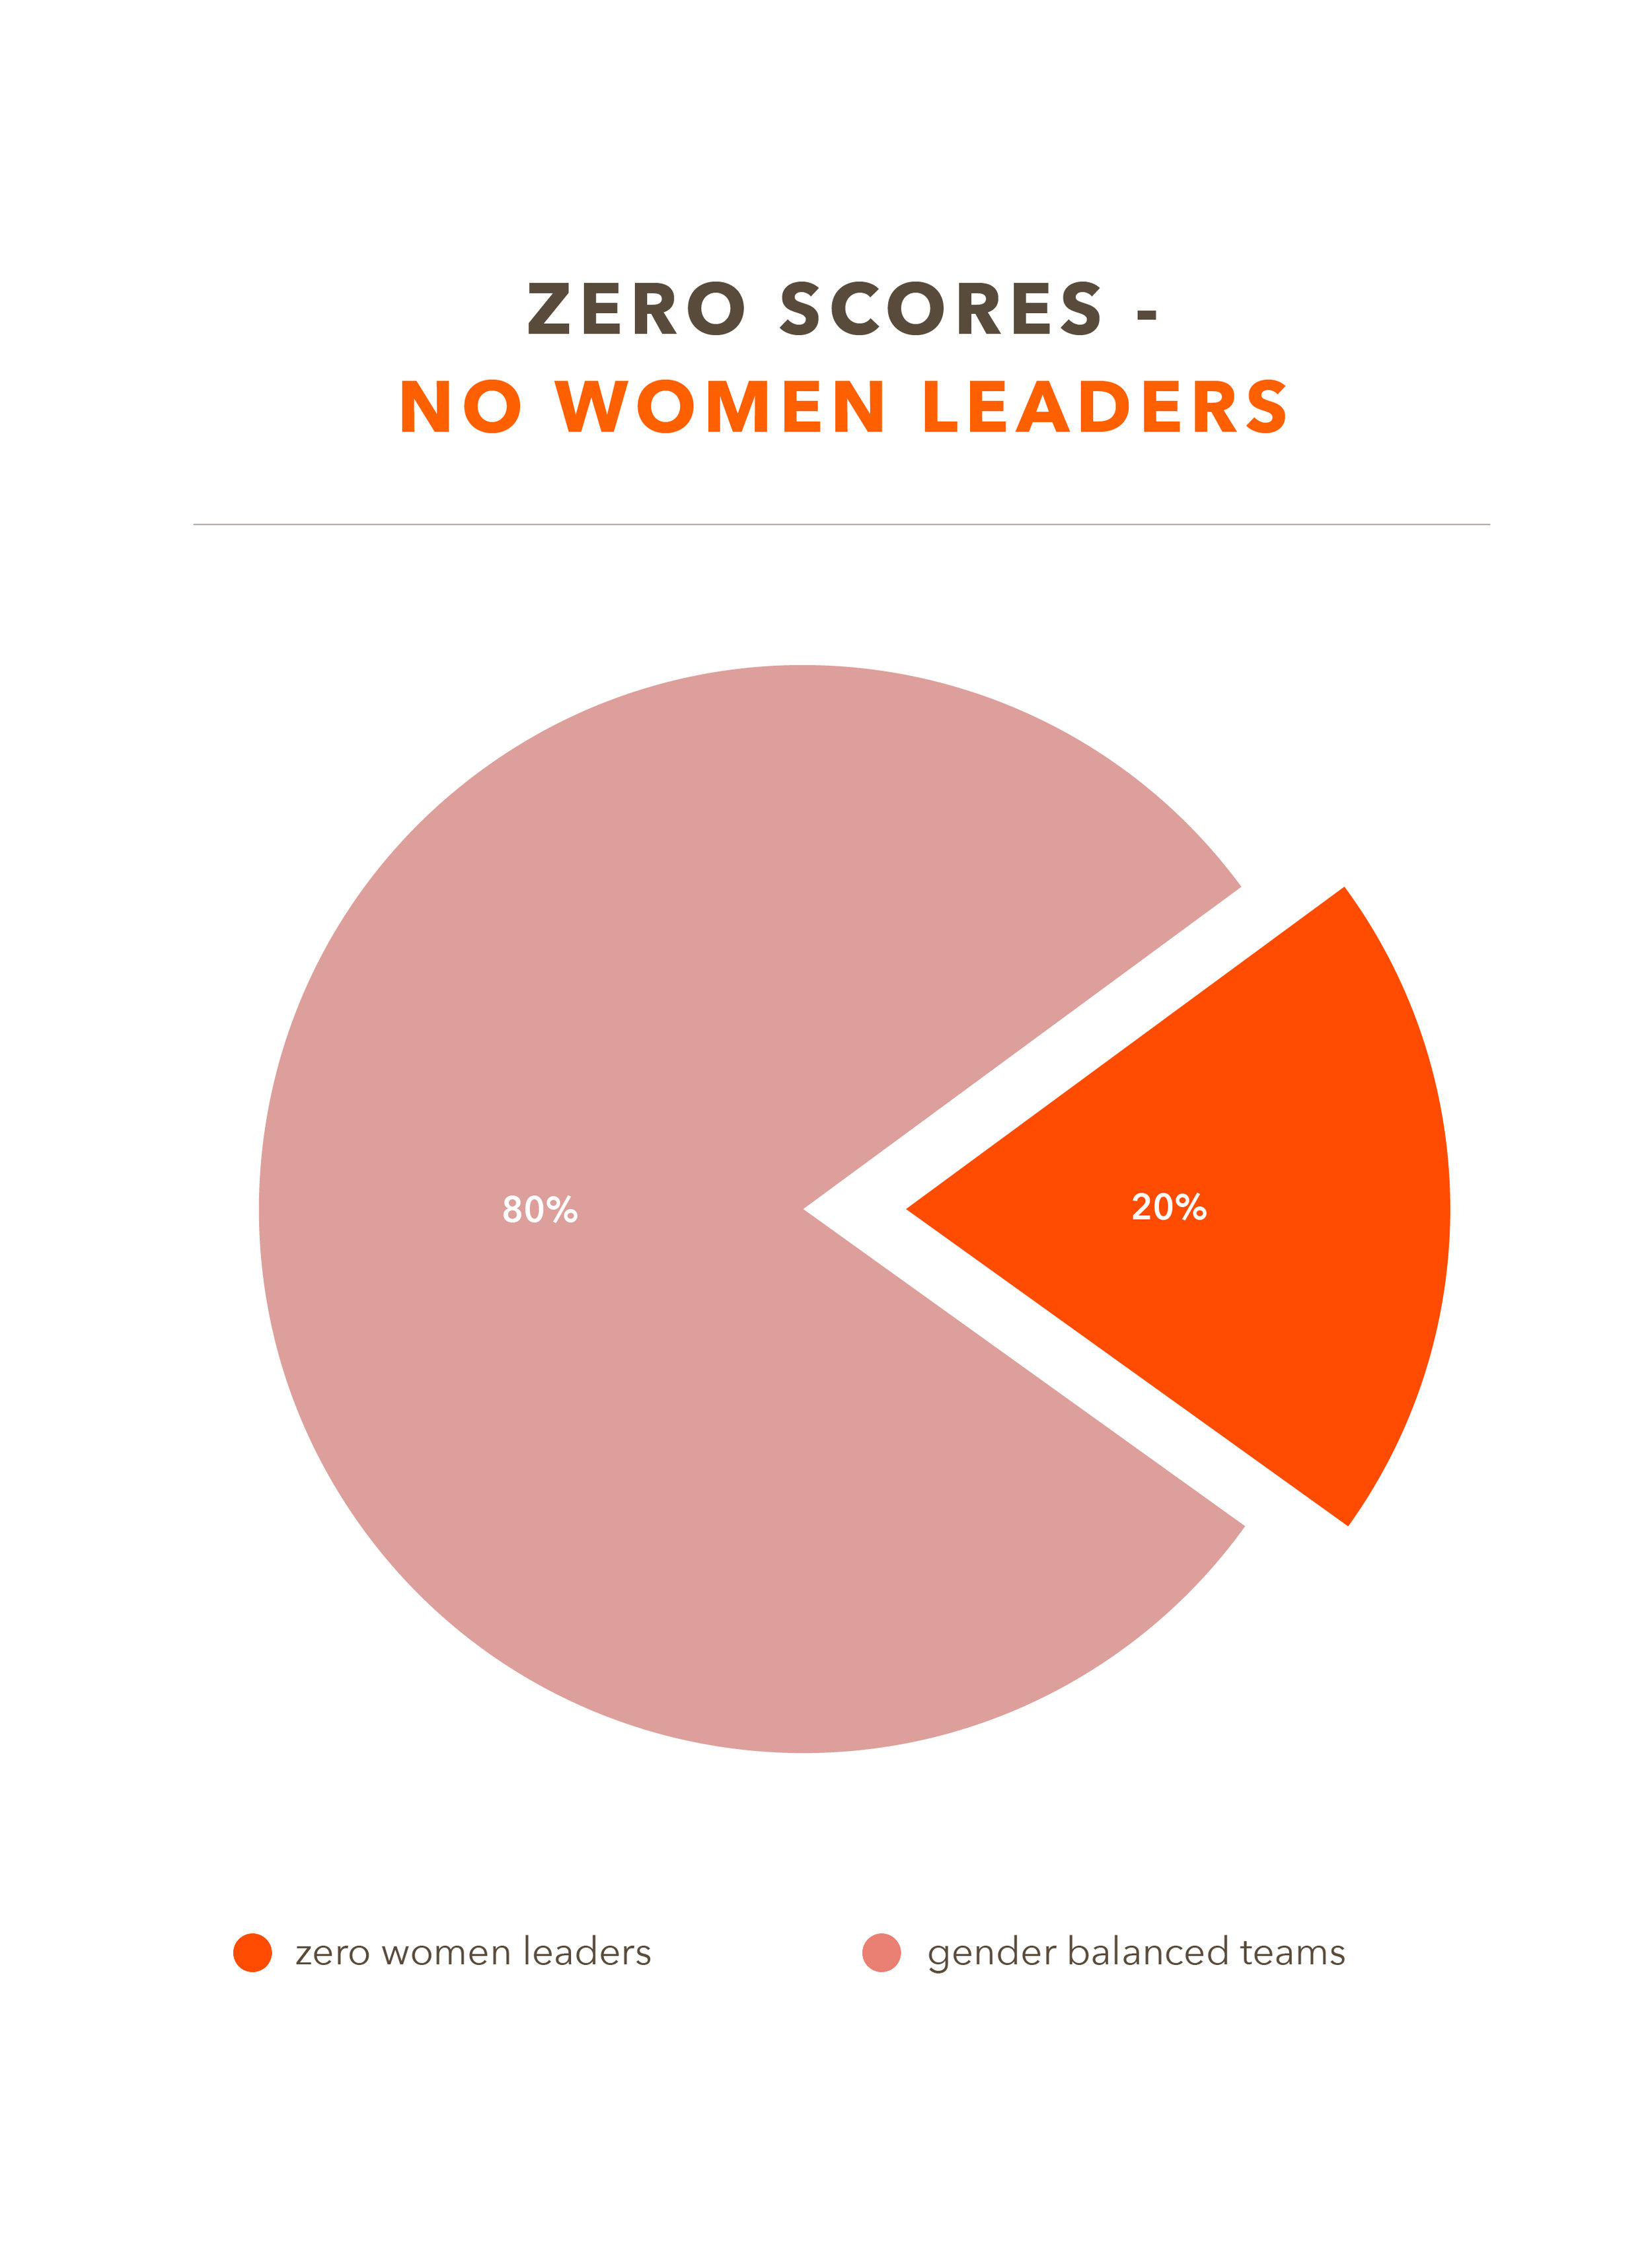 Zero Scores. - One out of every five organizations (20 percent) do not have a single woman serving on their leadership teams, as listed on their websites.